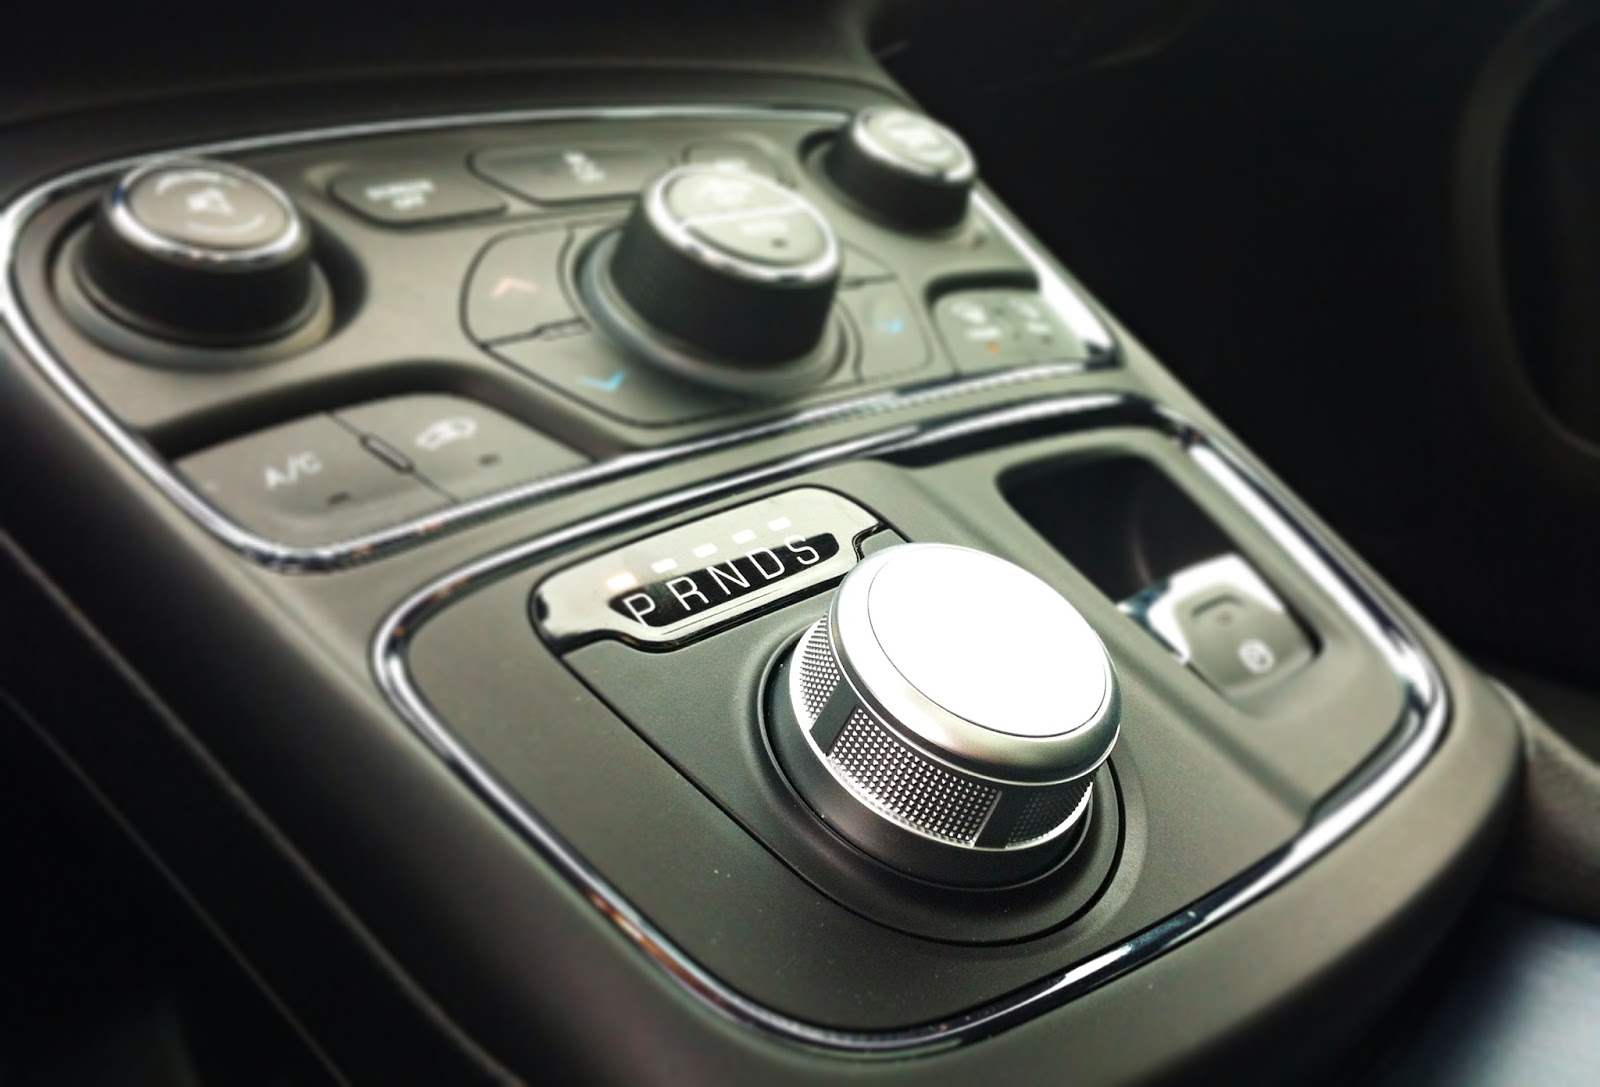 2015 Chrysler 200S rotary dial shifter